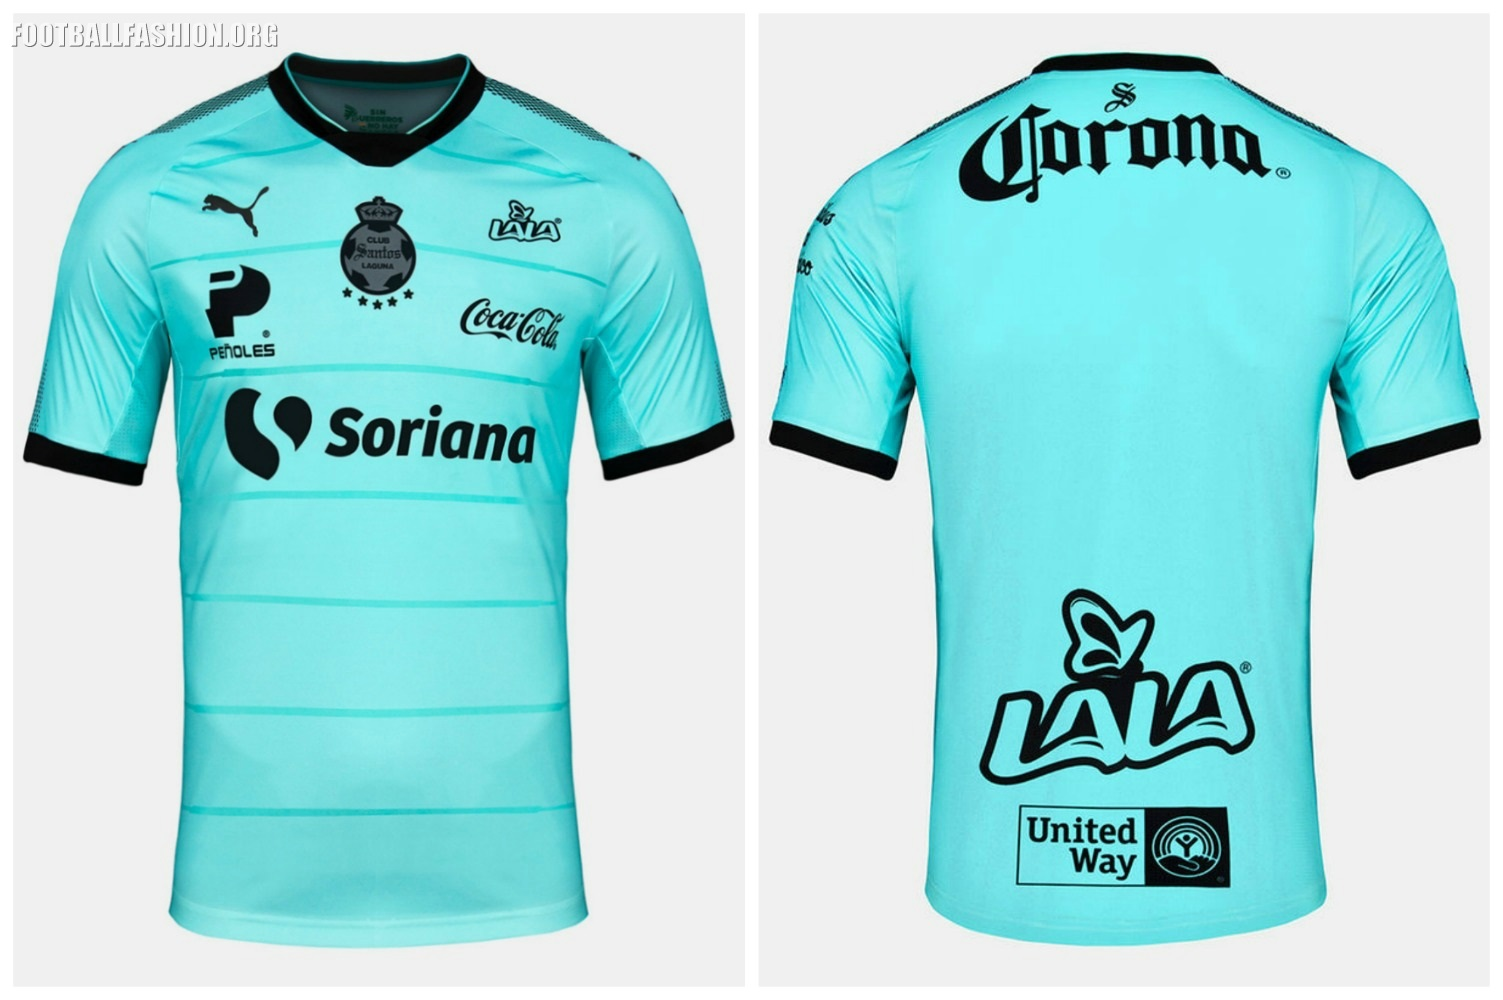 44e10994db3 Santos Laguna 2017 2018 PUMA Third Soccer Jersey, Football Kit, Shirt,  Camiseta de